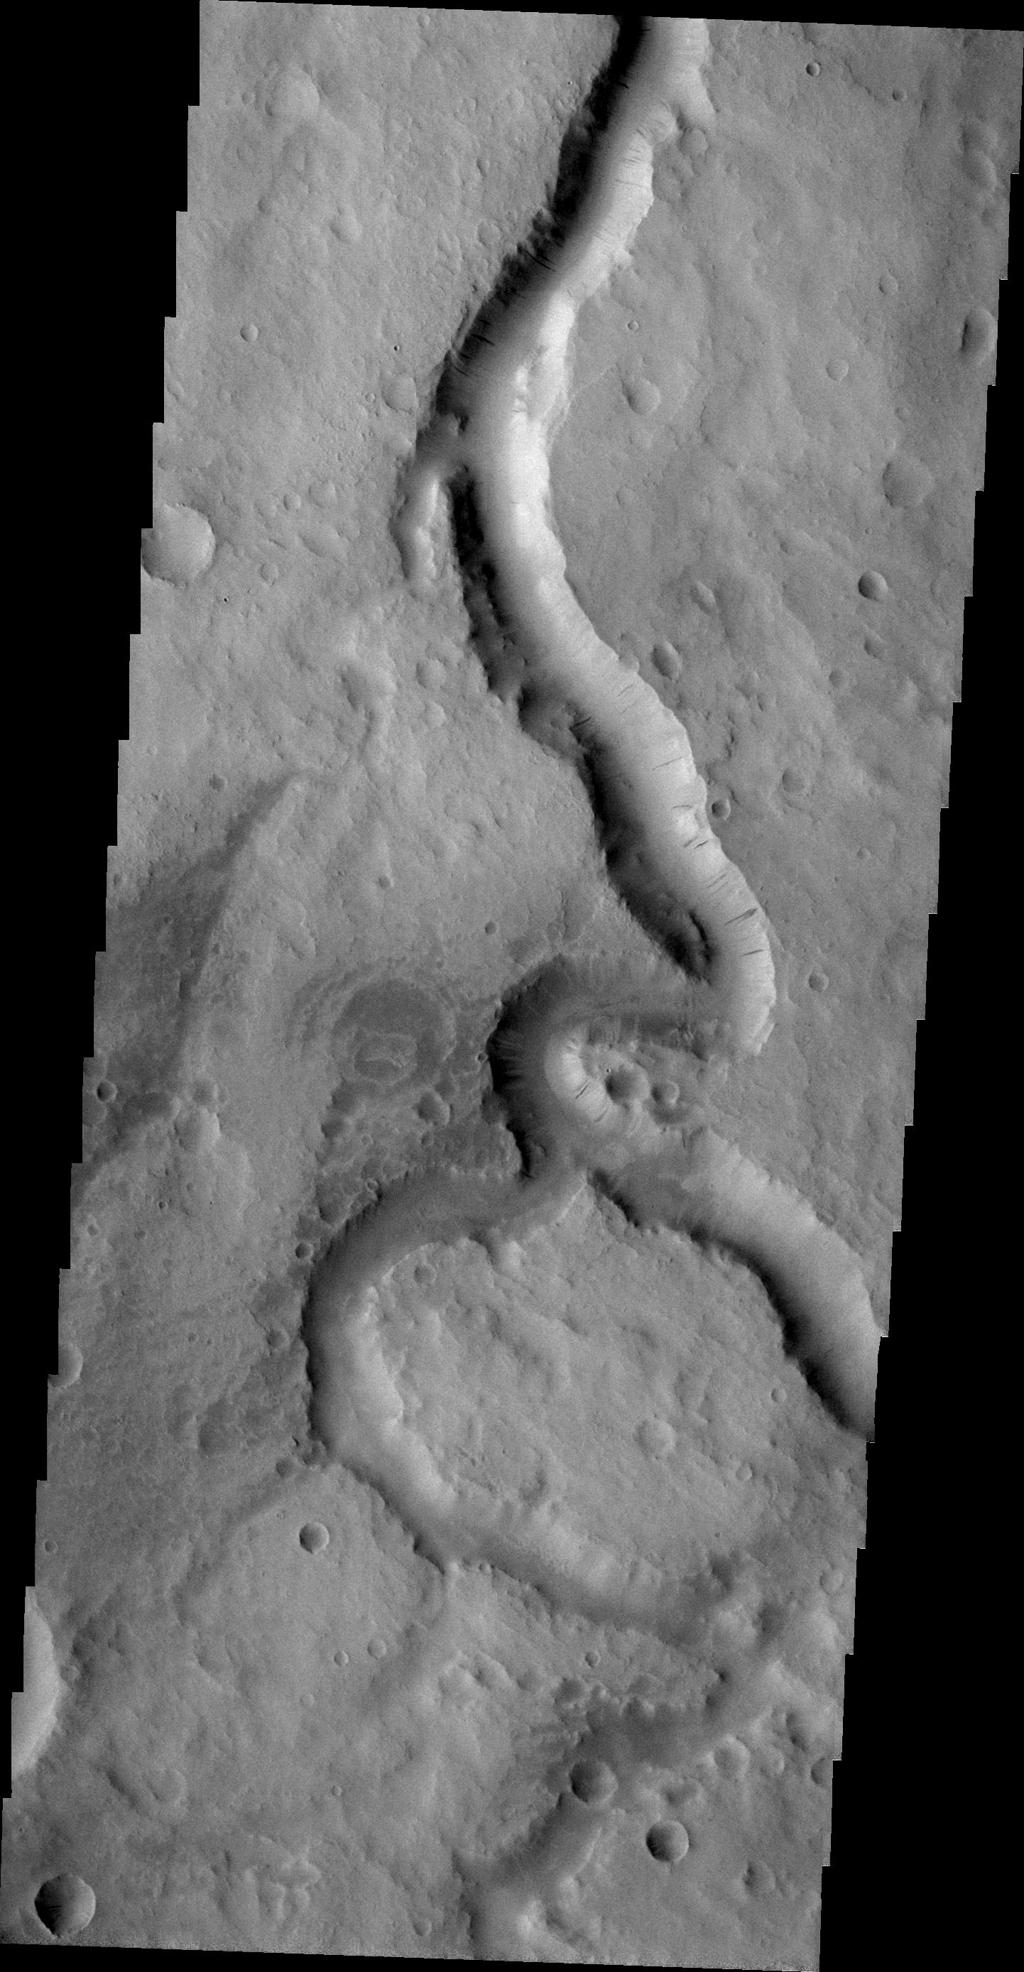 This image taken by NASA's 2001 Mars Odyssey spacecraft shows a portion of Scamander Vallis. Dark slope streaks are also visible on the west-facing wall of the channel.